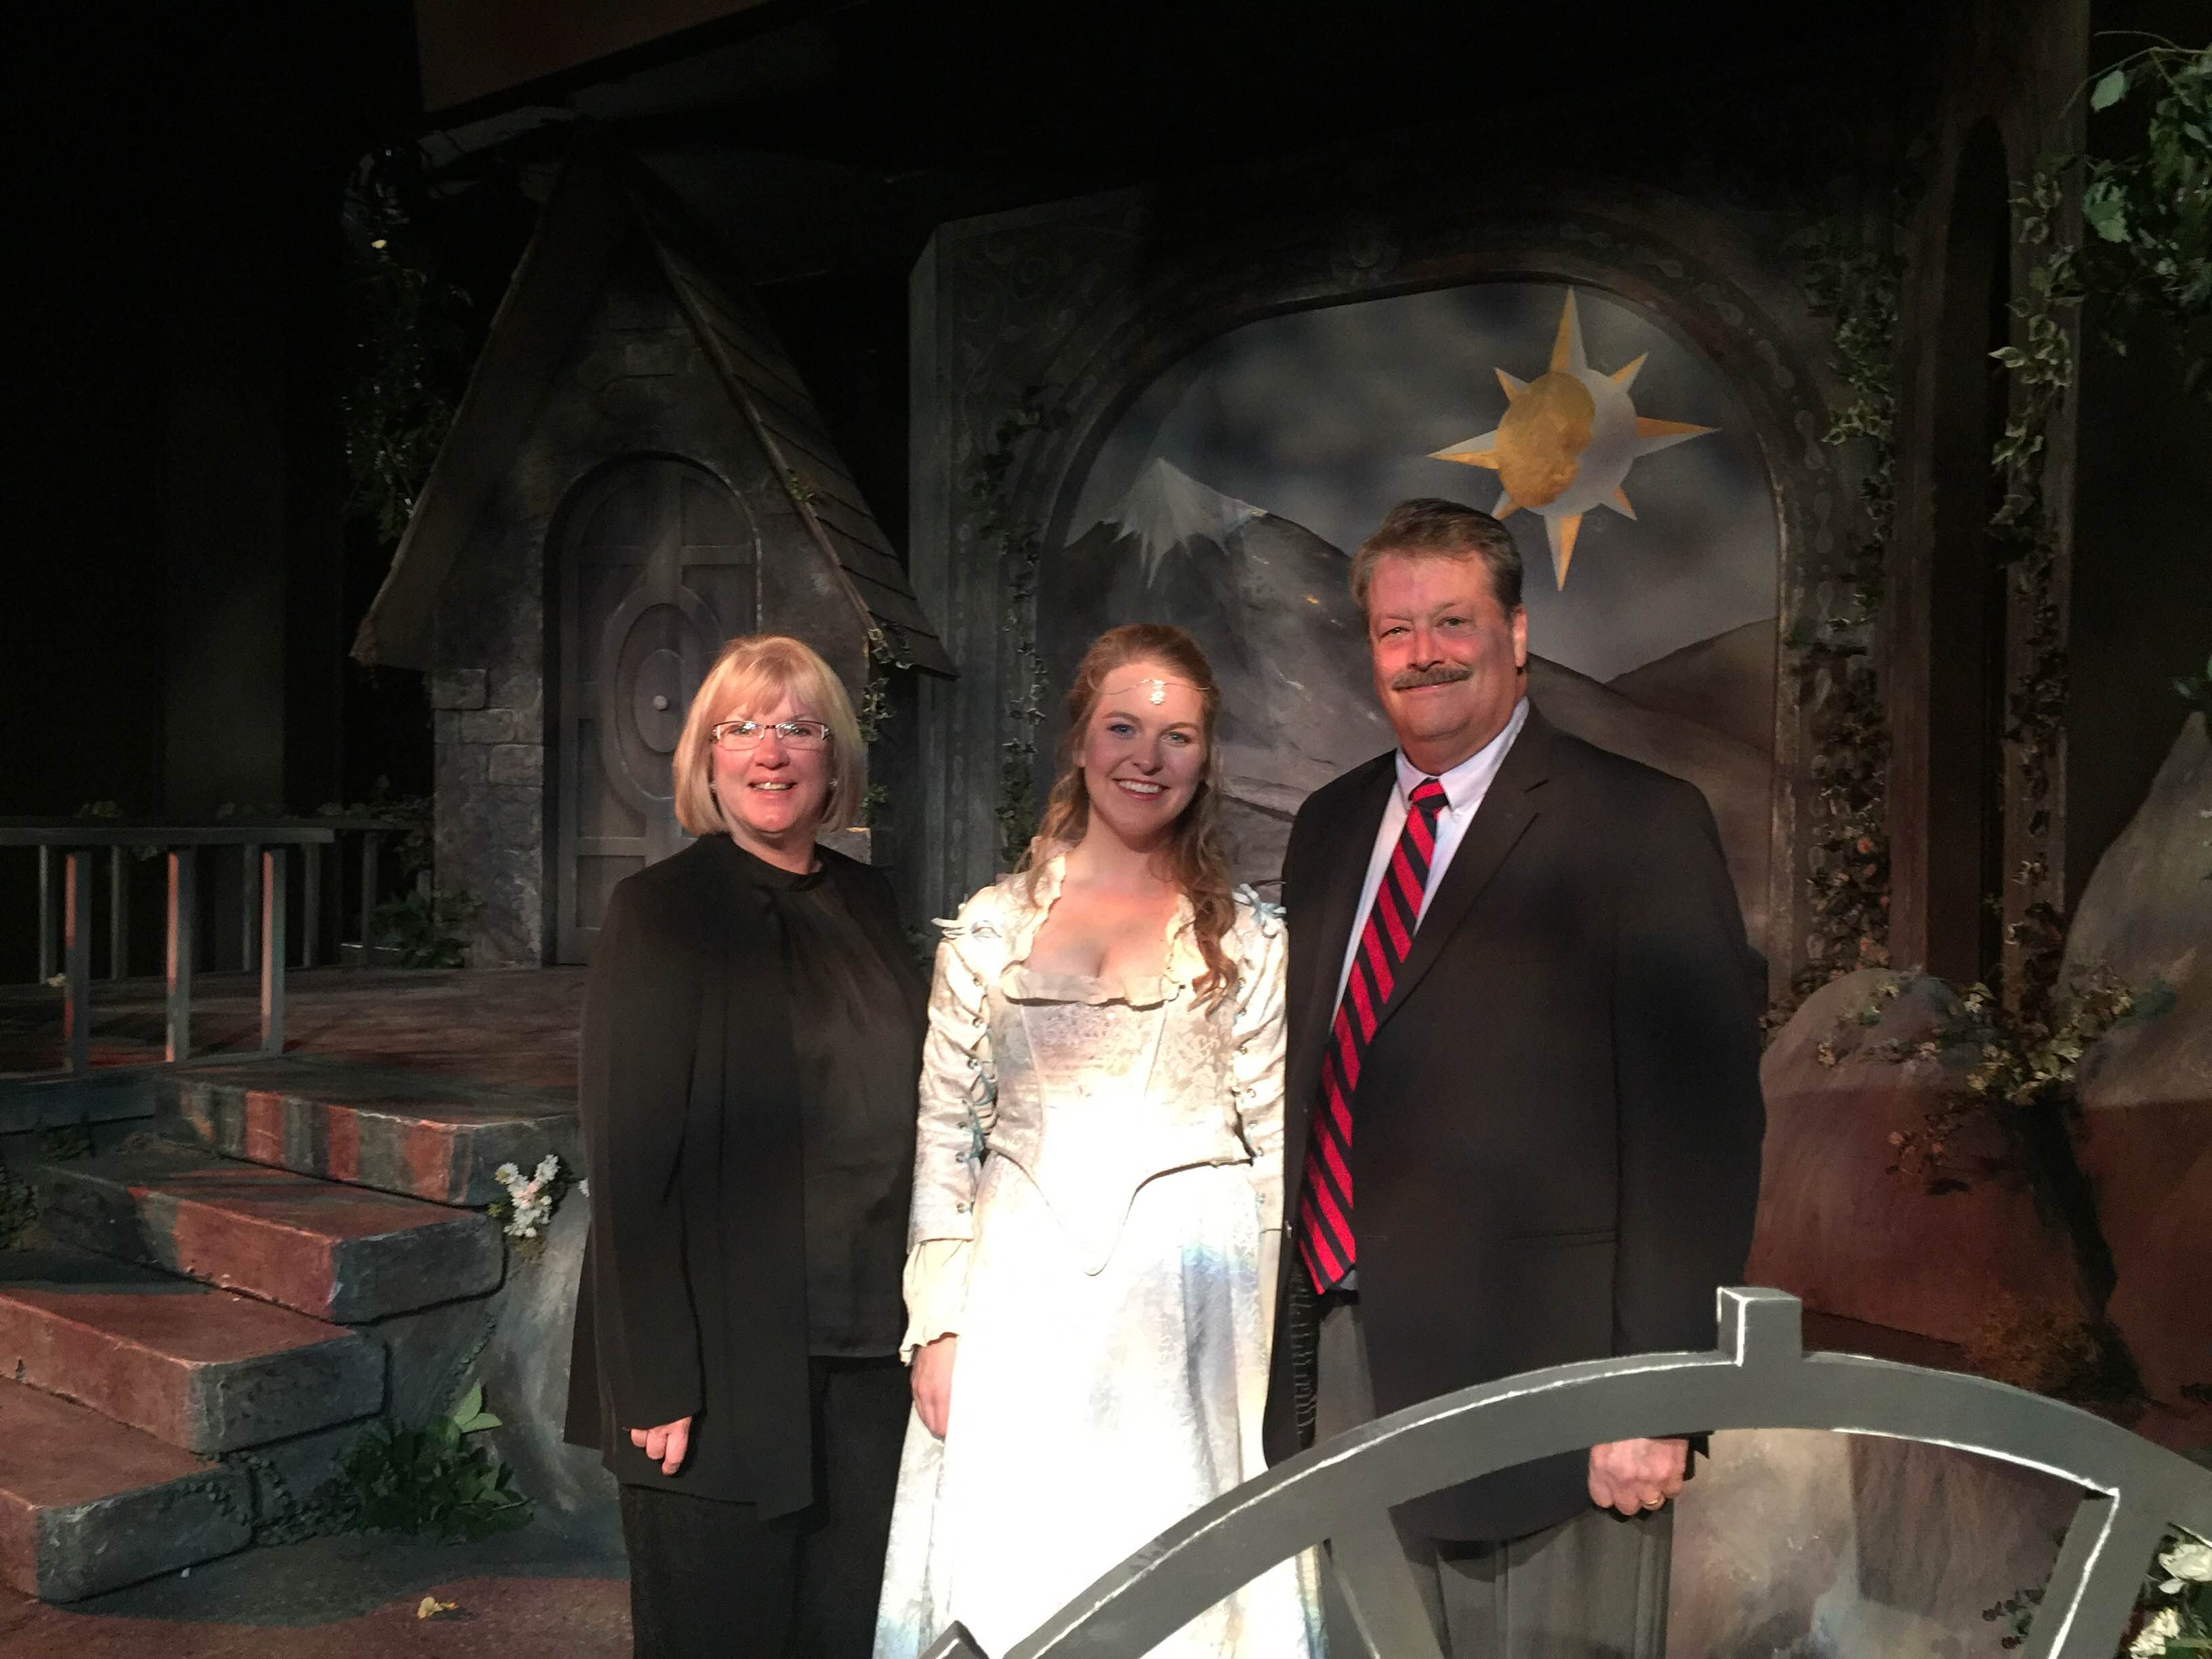 Abigail Rethwisch and her sponsors Dr. Frederick and Lynne Lacey